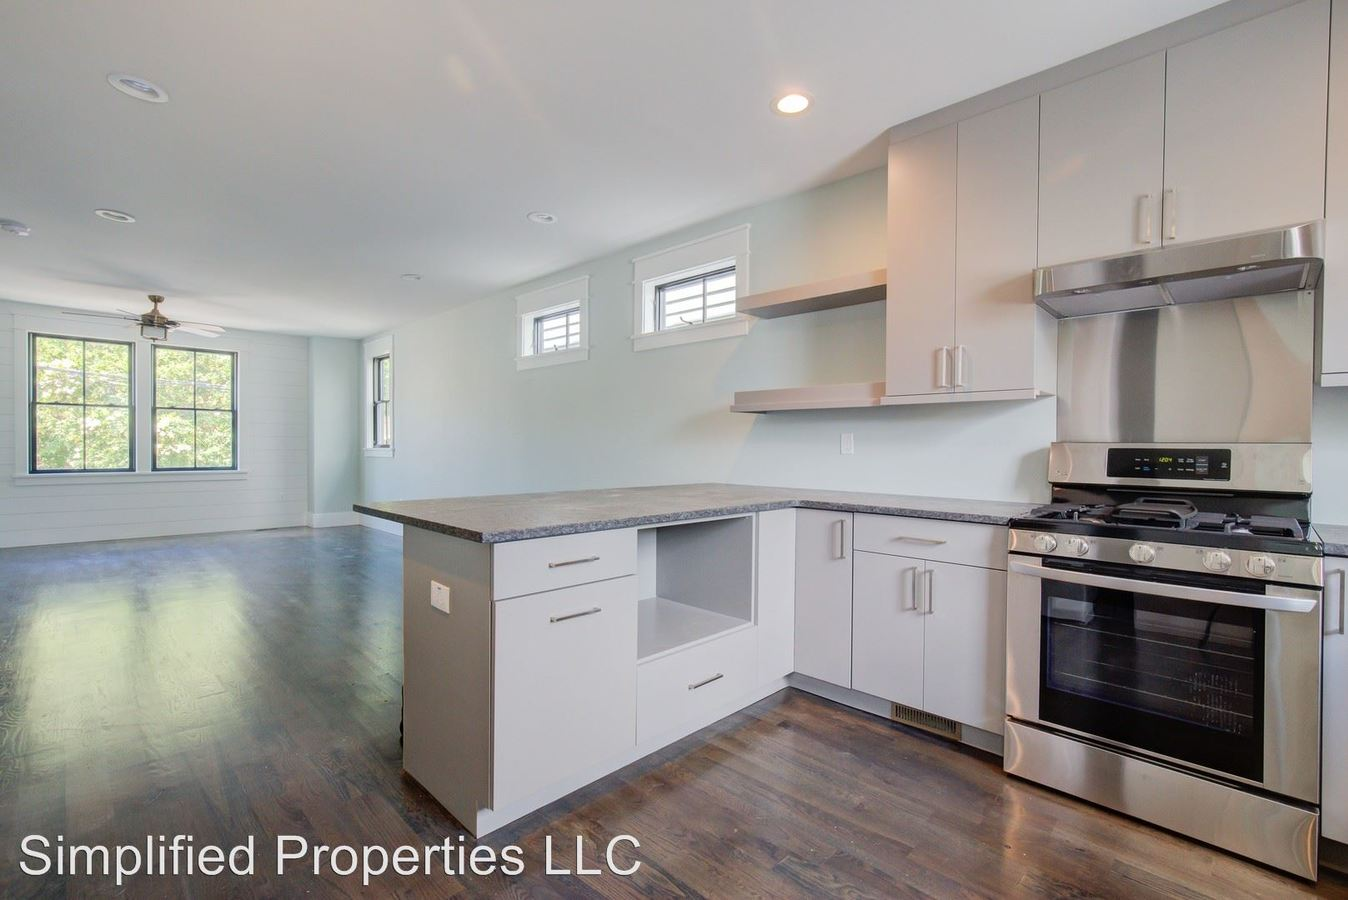 3 Bedrooms 3 Bathrooms Apartment for rent at 96 Nassau in Charleston, SC